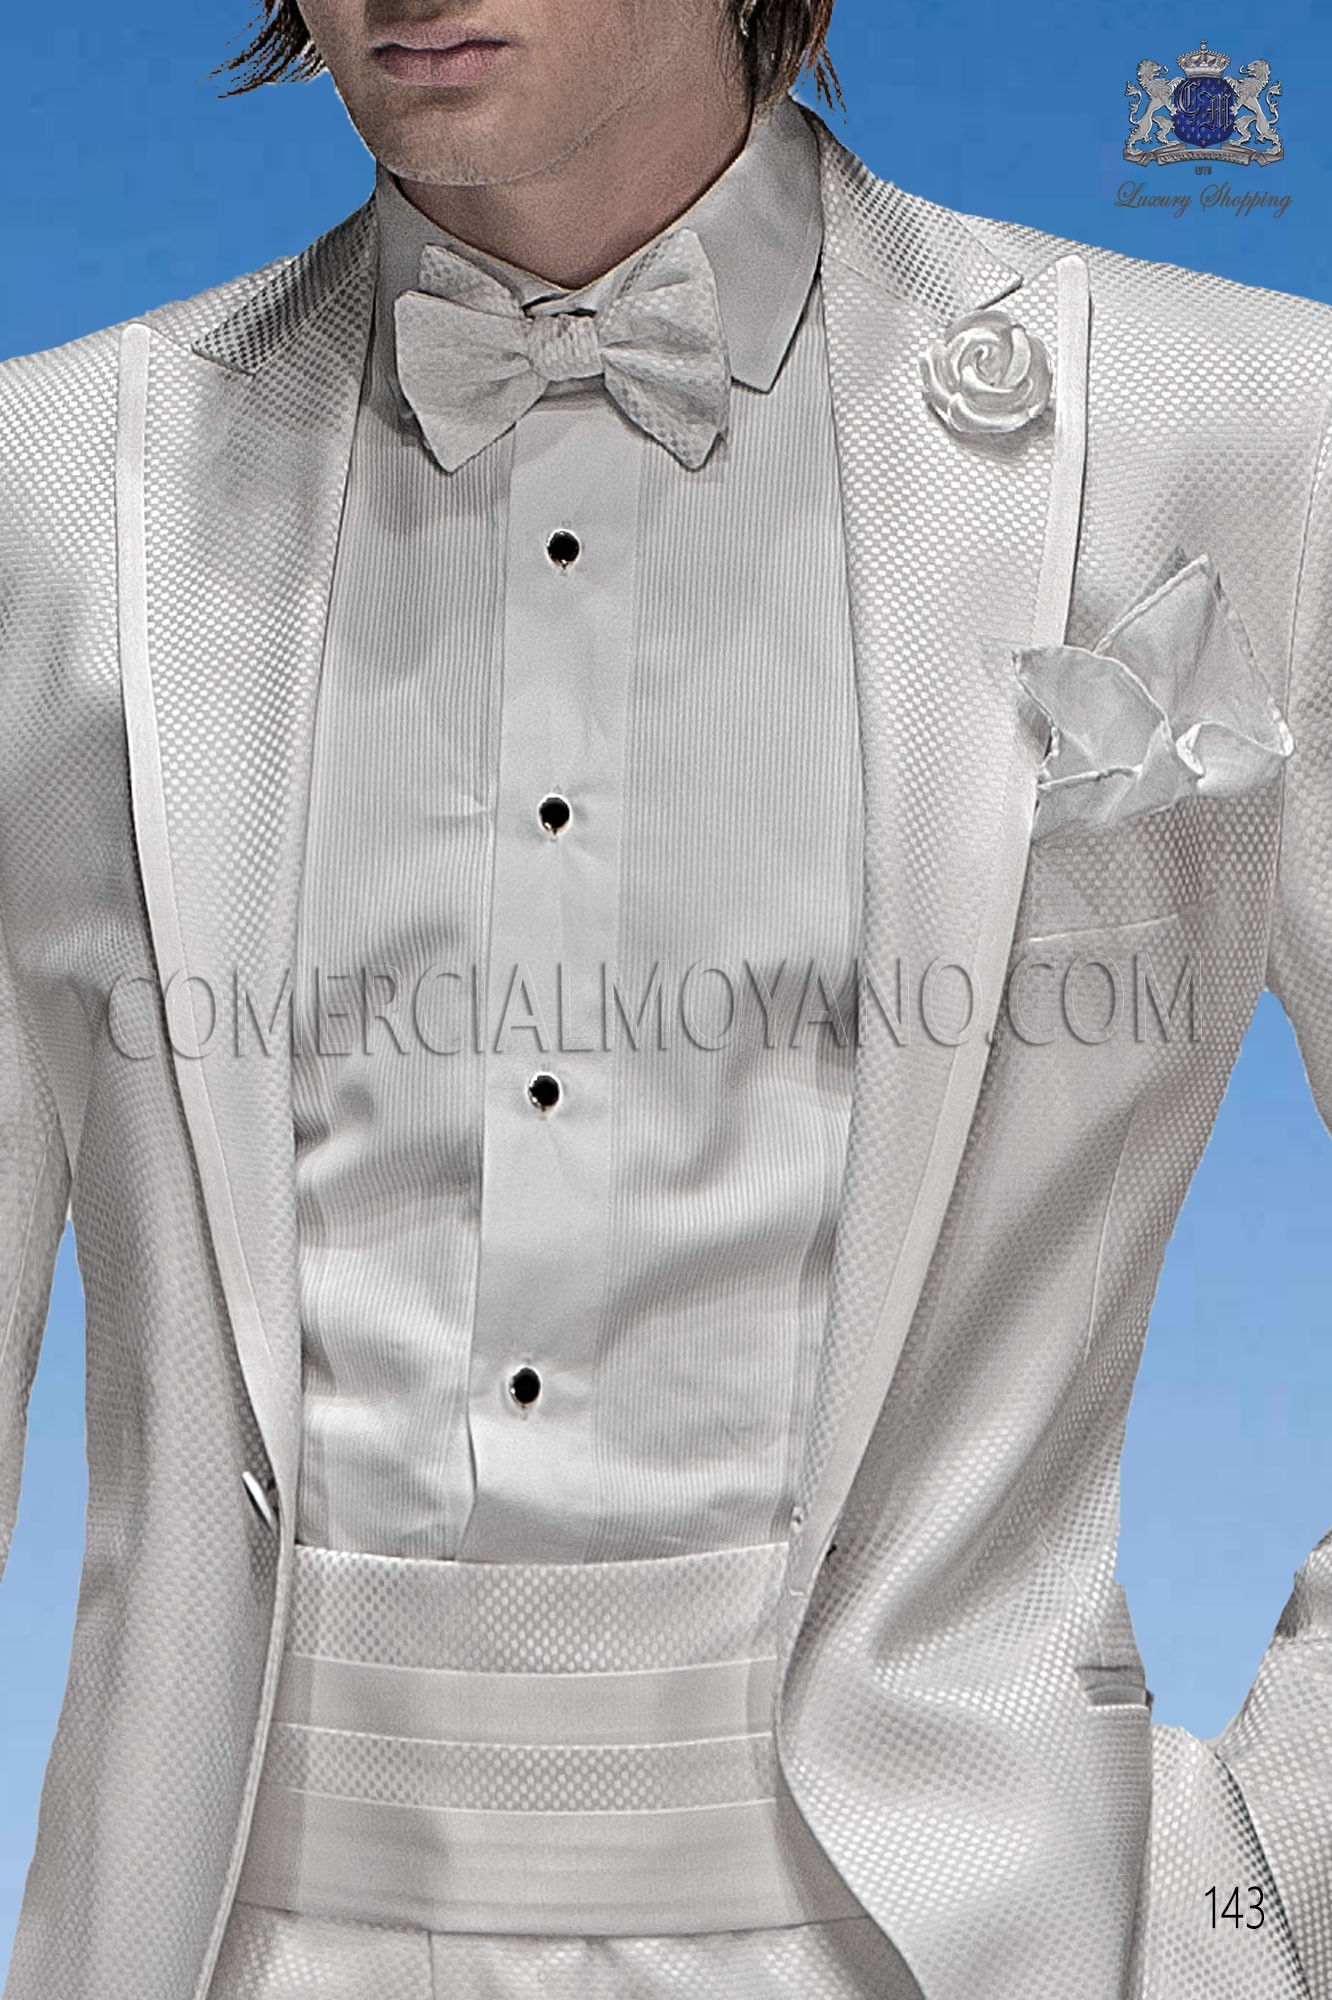 Italian hipster white men wedding suit, model: 143 Ottavio Nuccio Gala Hipster Collection